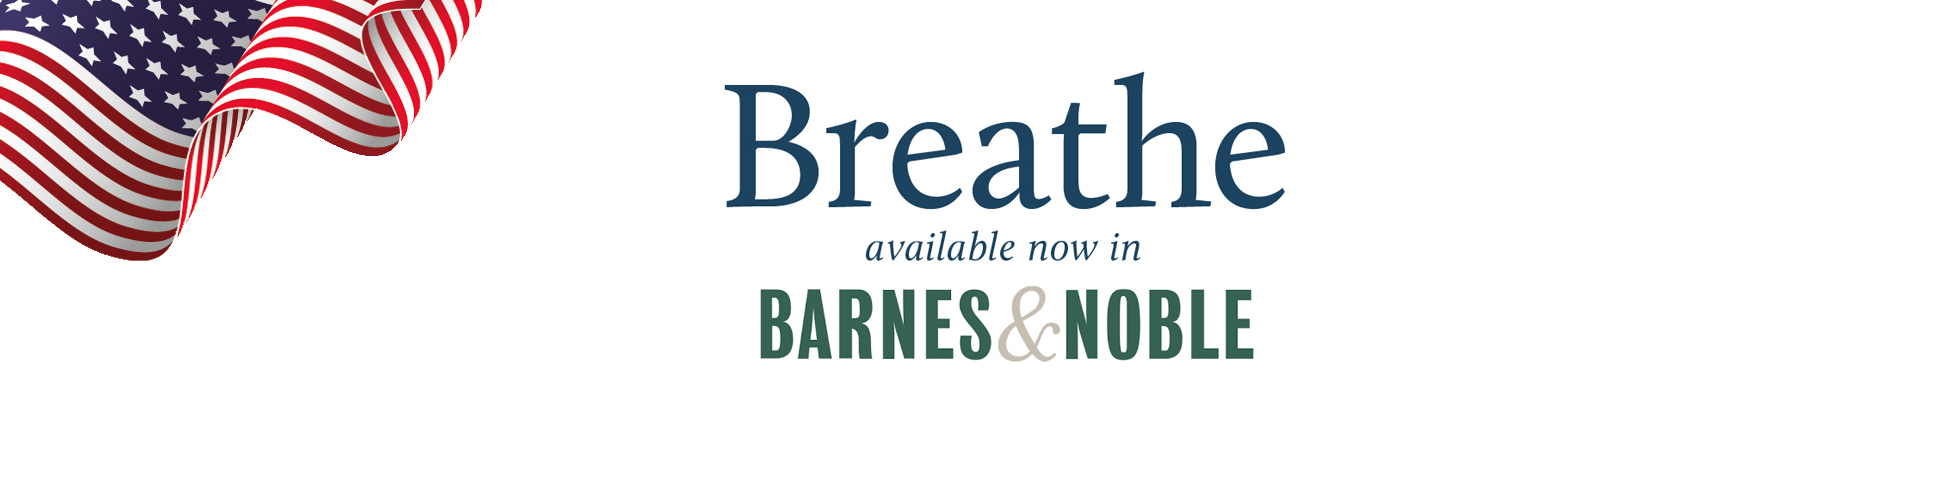 breathe-barnes-noble-homepage-final